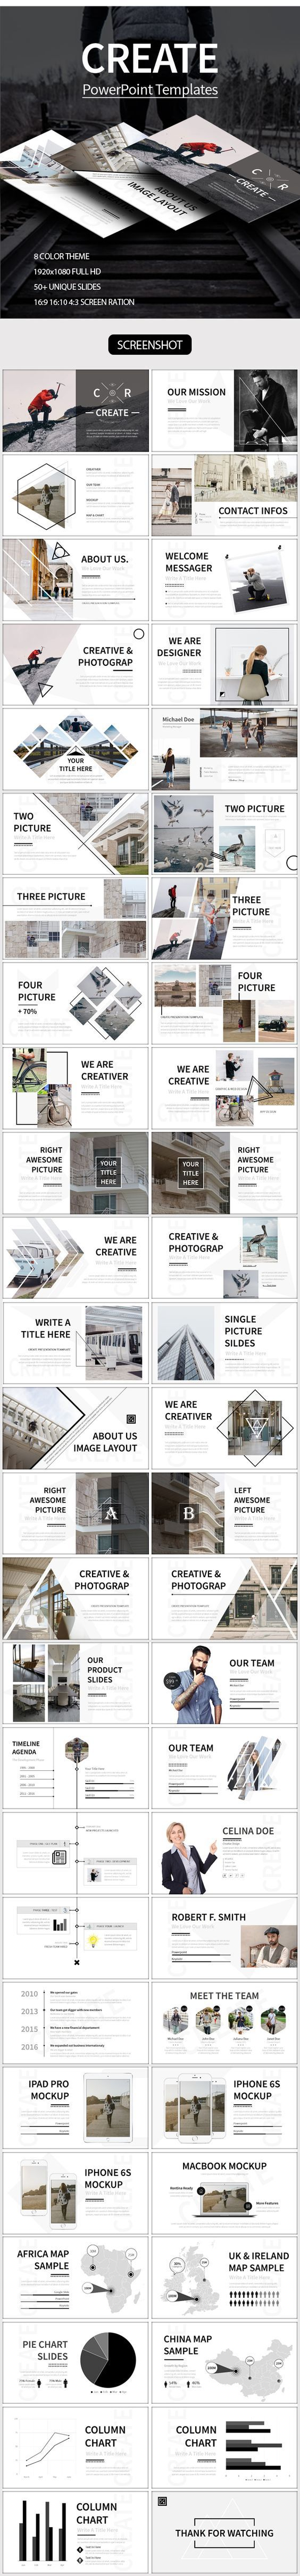 Great ebook design + best ebook design examples + head first design patterns pdf free download ebook + free ebook design templates + pdf ebook design + ebook layout design + ebook layout + interior layout + ebook interior layout + pdf design + ebook formatting